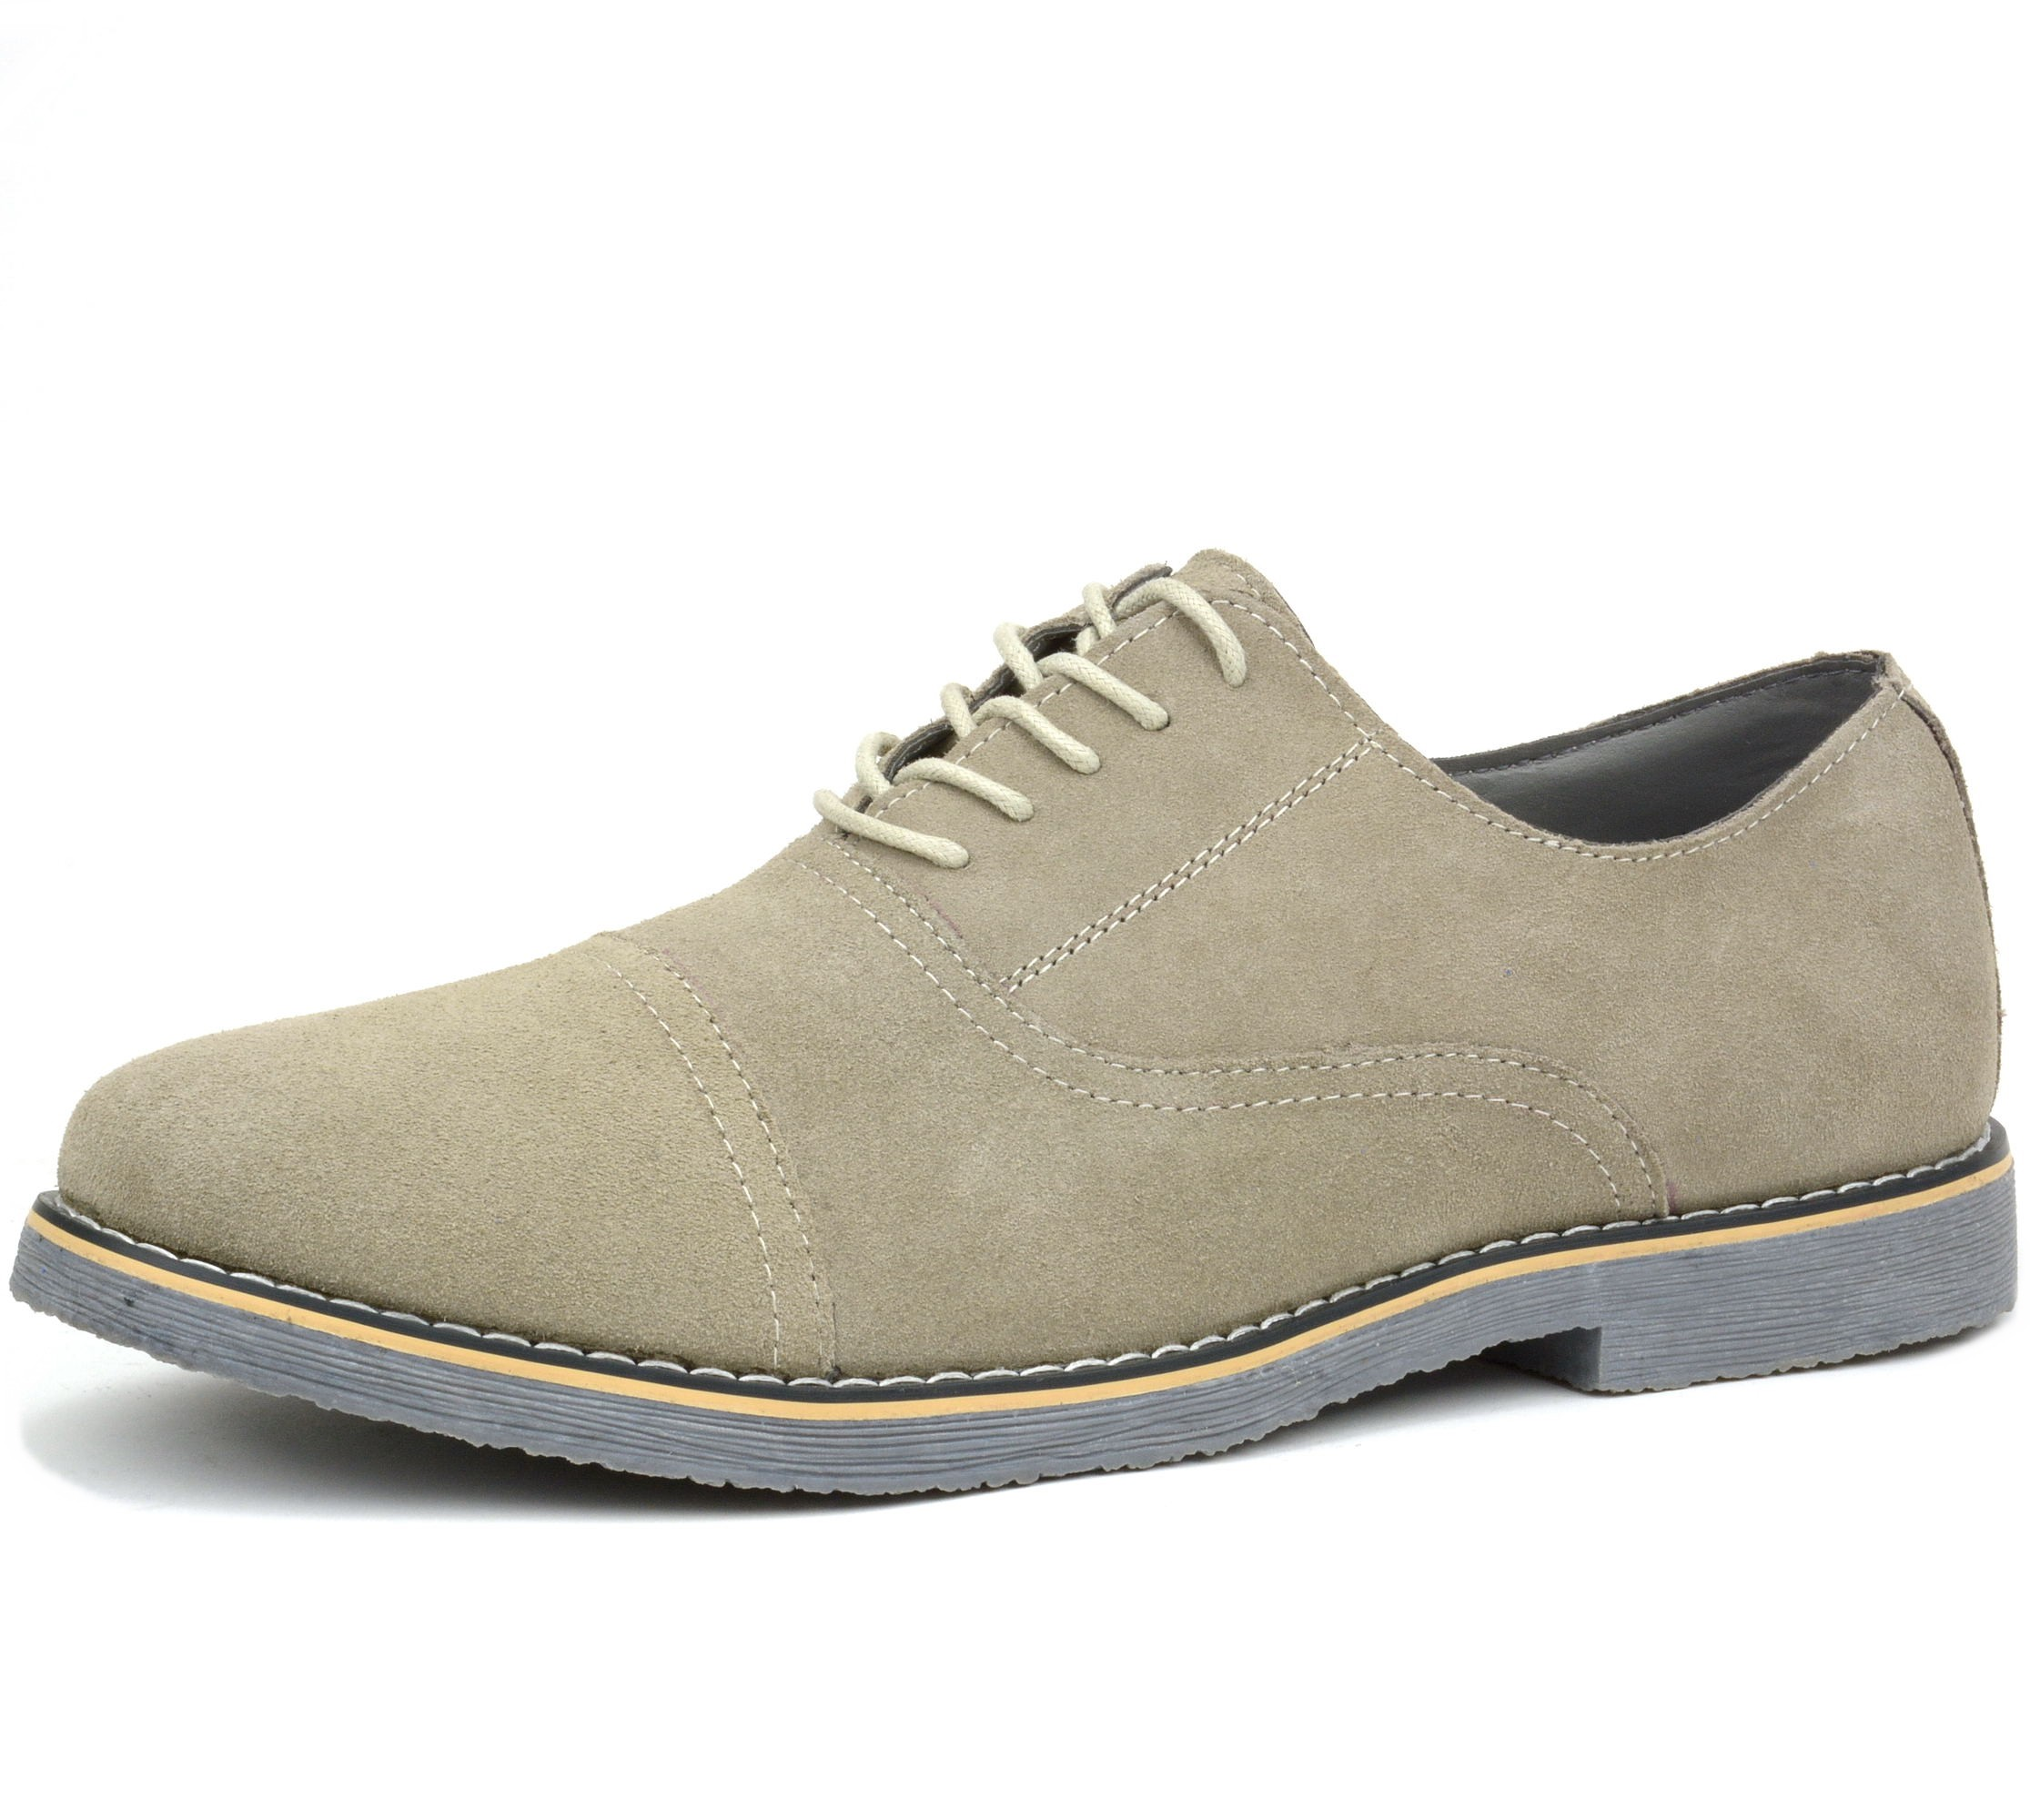 Supple Suede lace-up Spectator Oxford from Mezlan's collection features a Wingtip design features decorative perforations, a clean welt, and a full Leather sole!